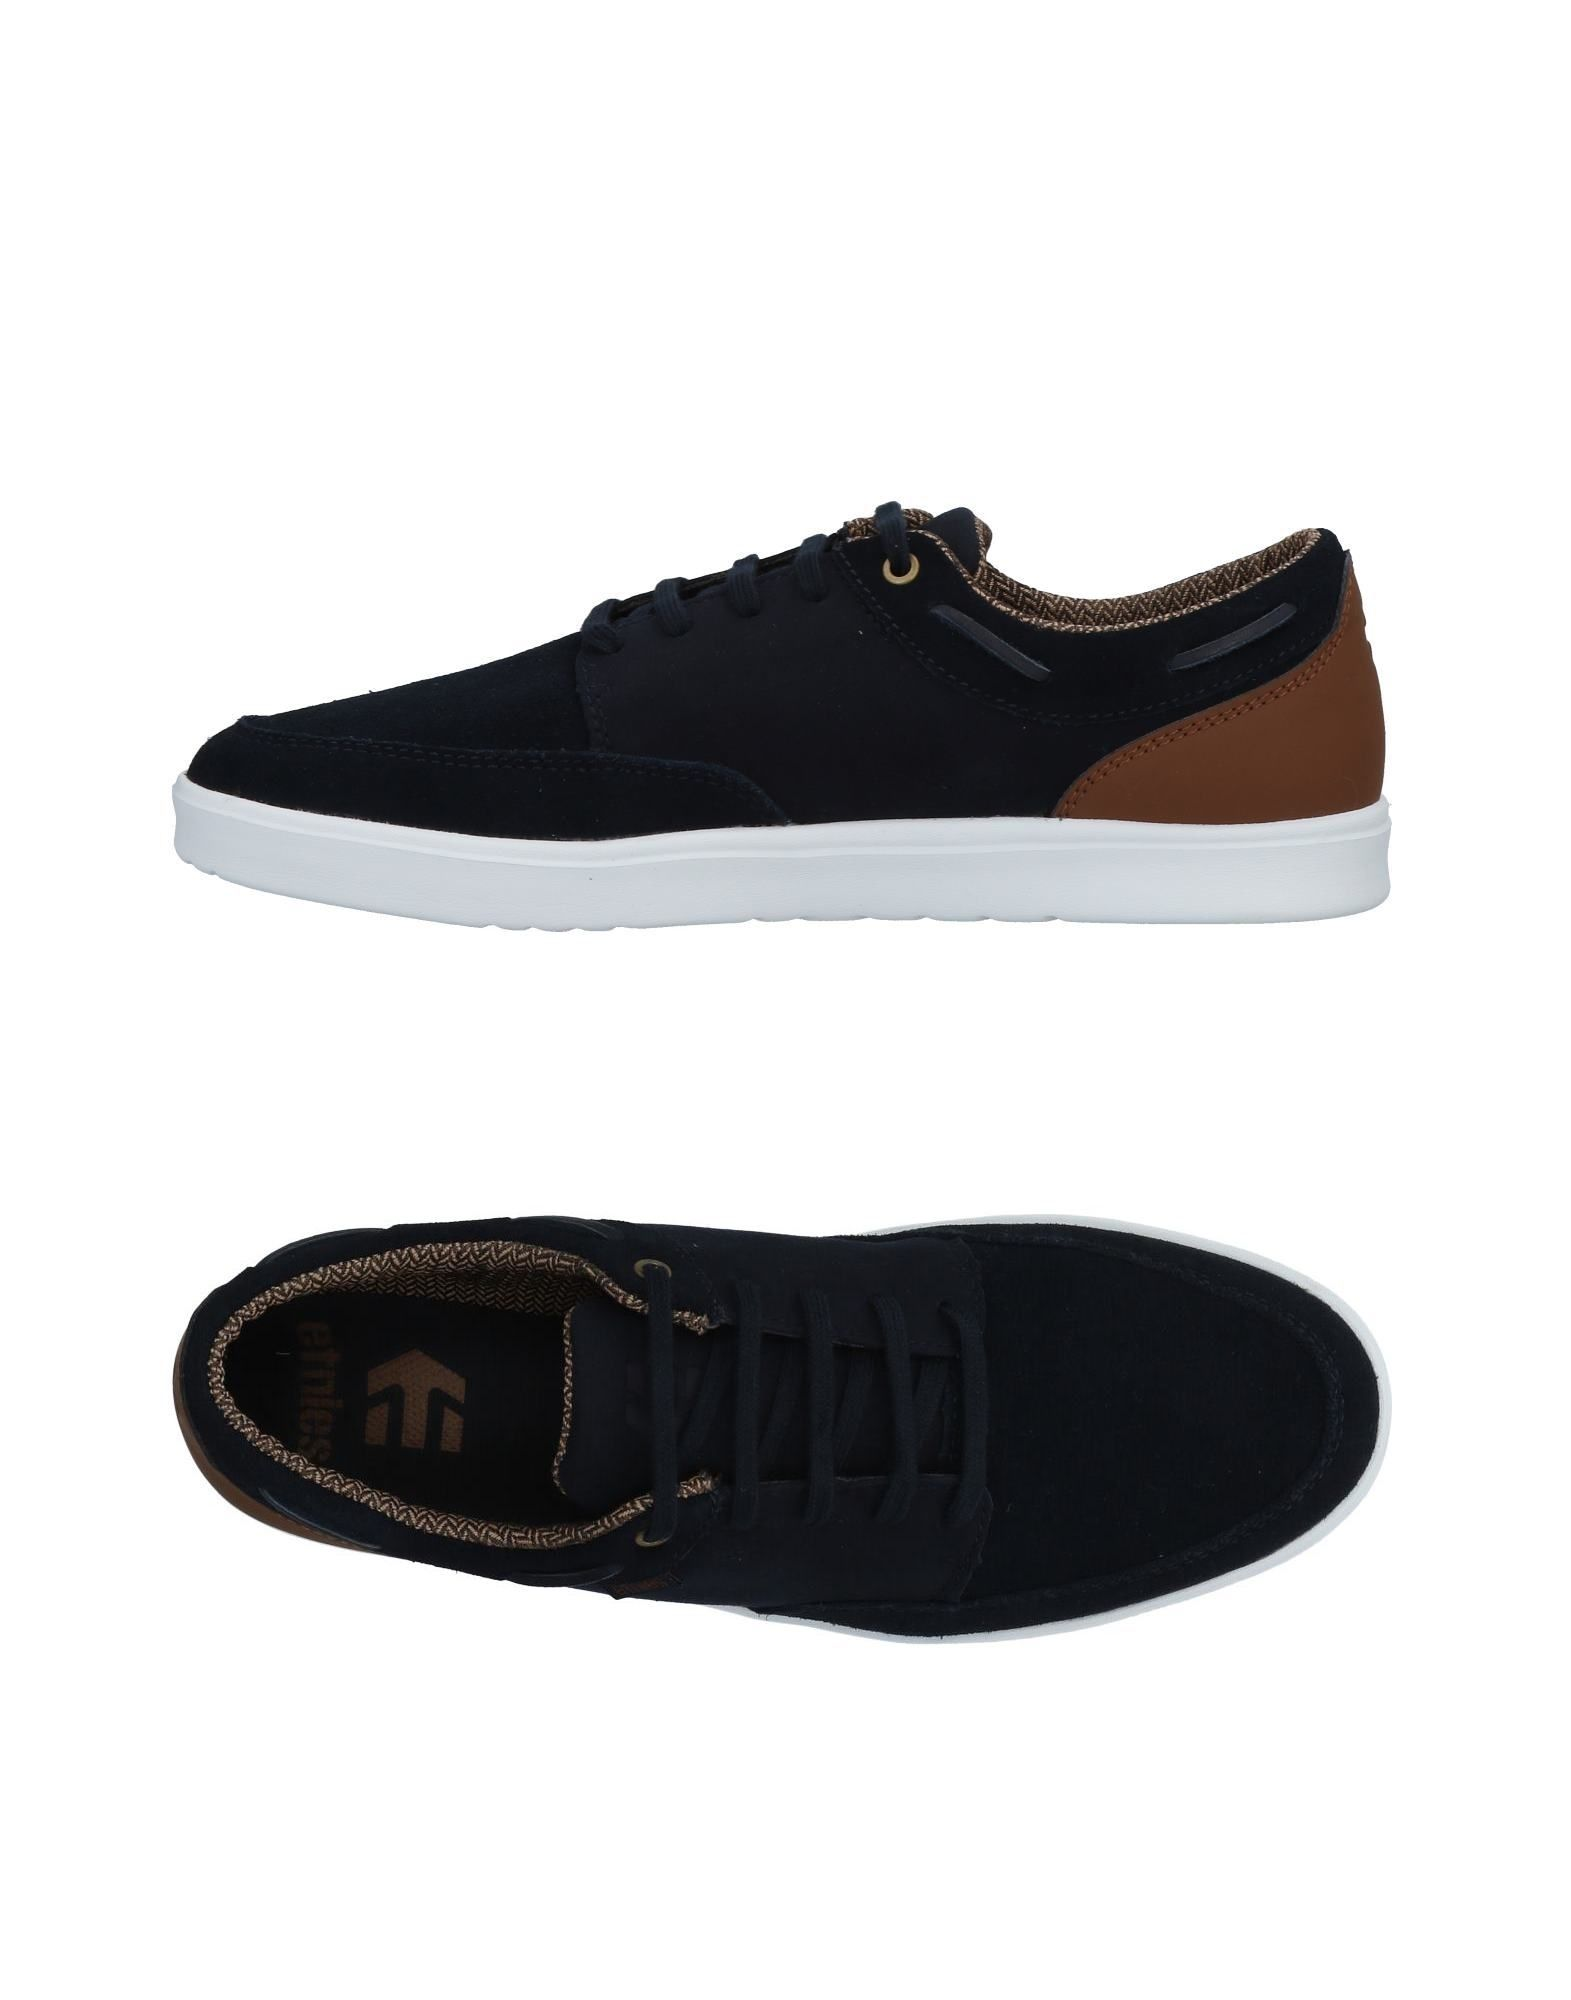 Etnies Sneakers  - Men Etnies Sneakers online on  Sneakers Canada - 11473781JV 37fea4